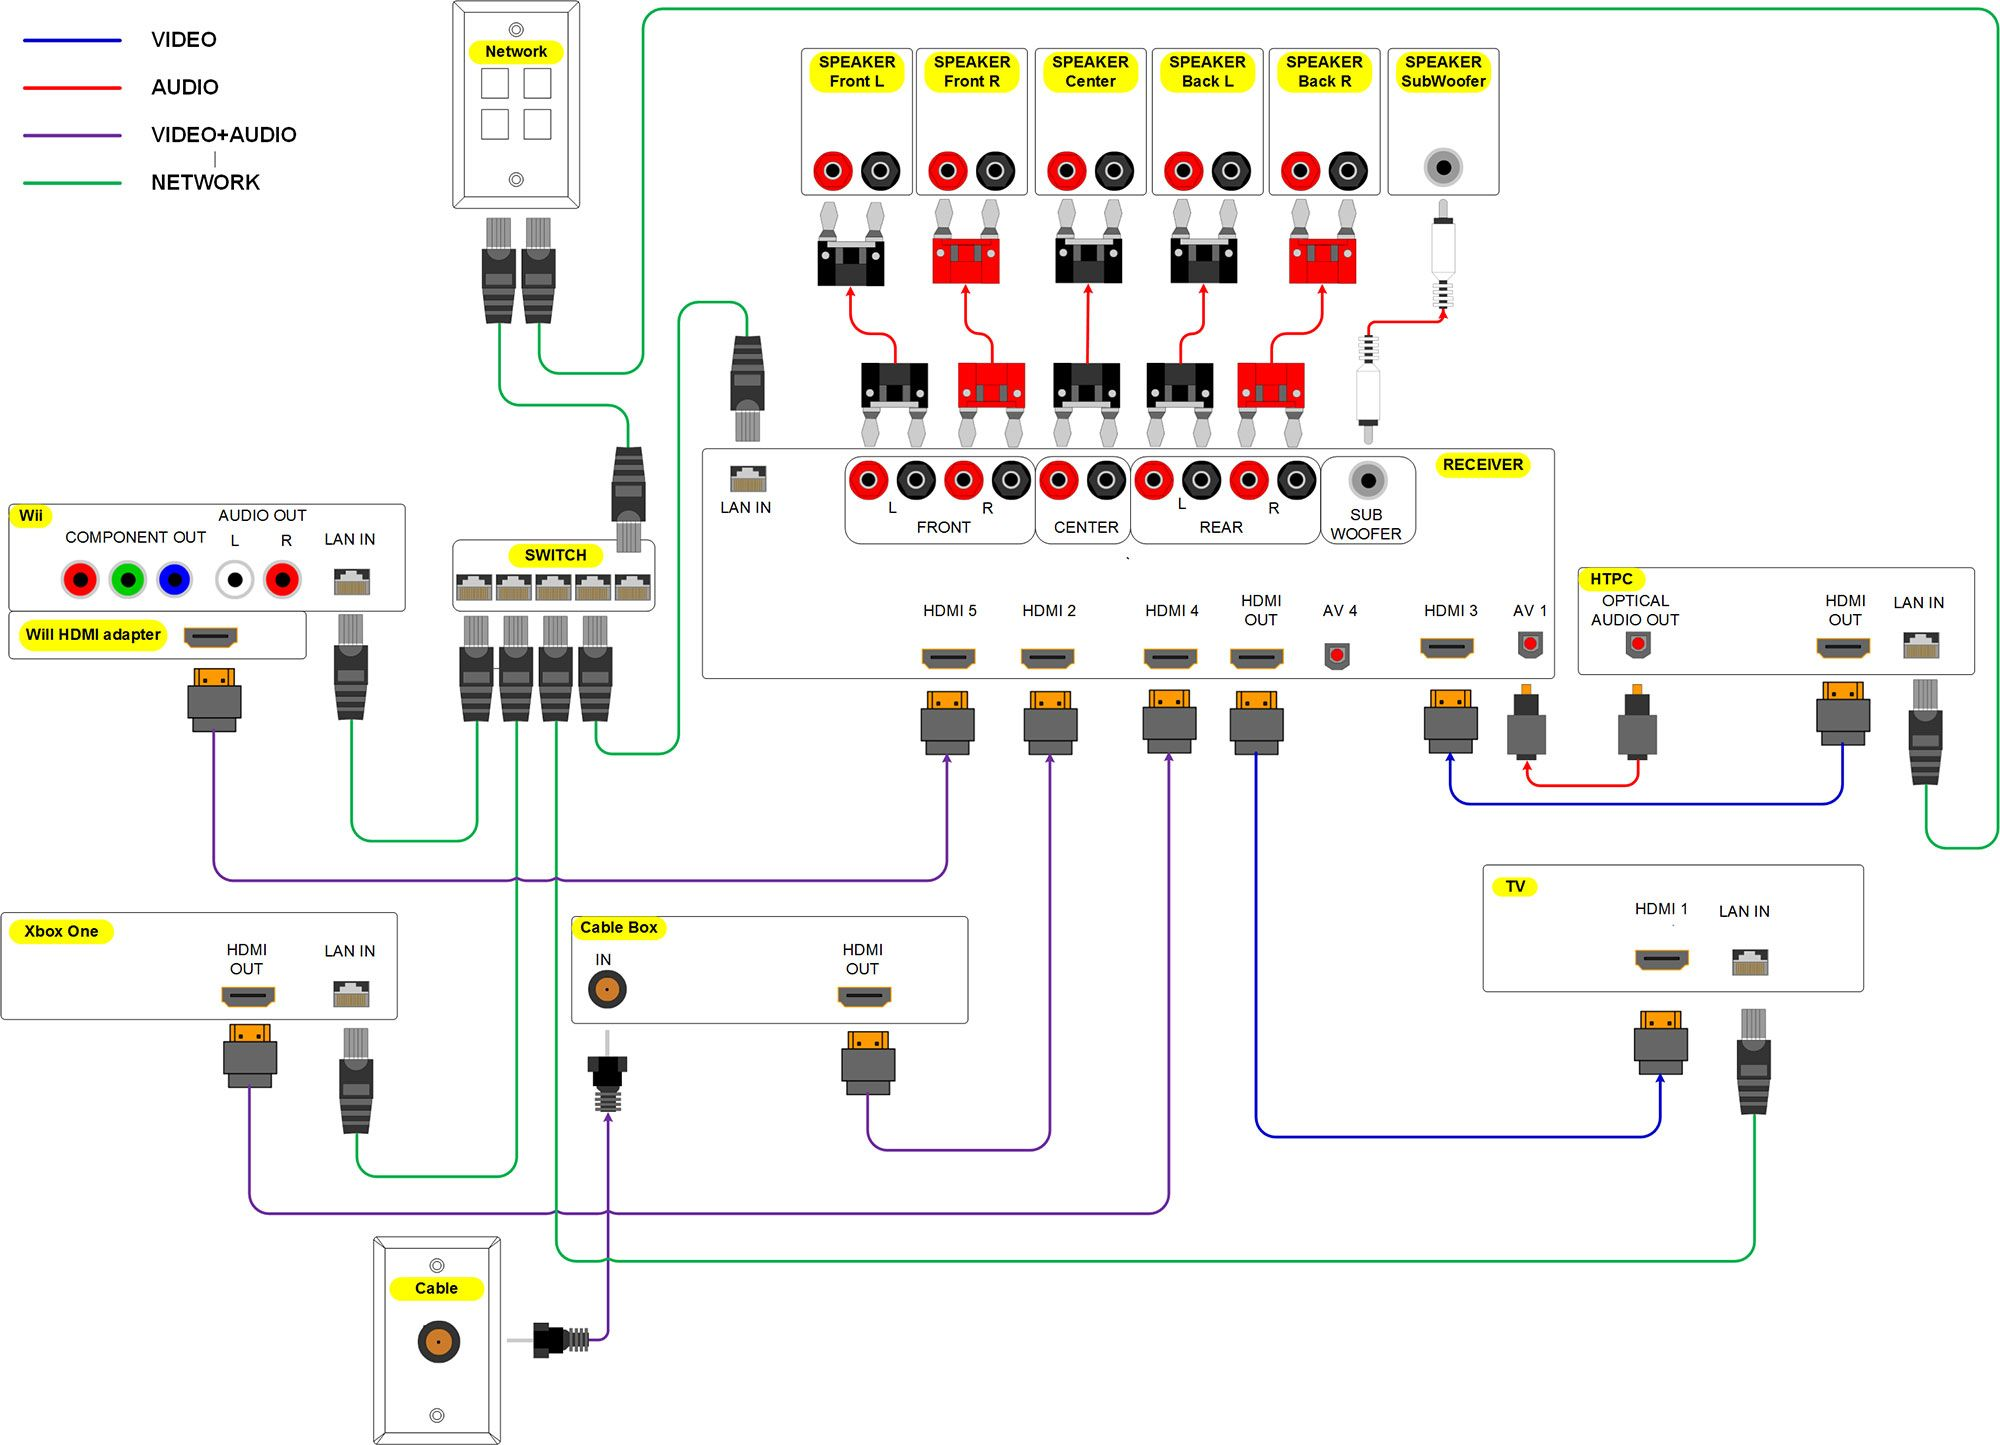 home theater wiring diagram click it to see the big 2000 pixel wide rh pinterest com Home Theater Setup Ideas Home Theater Room Design